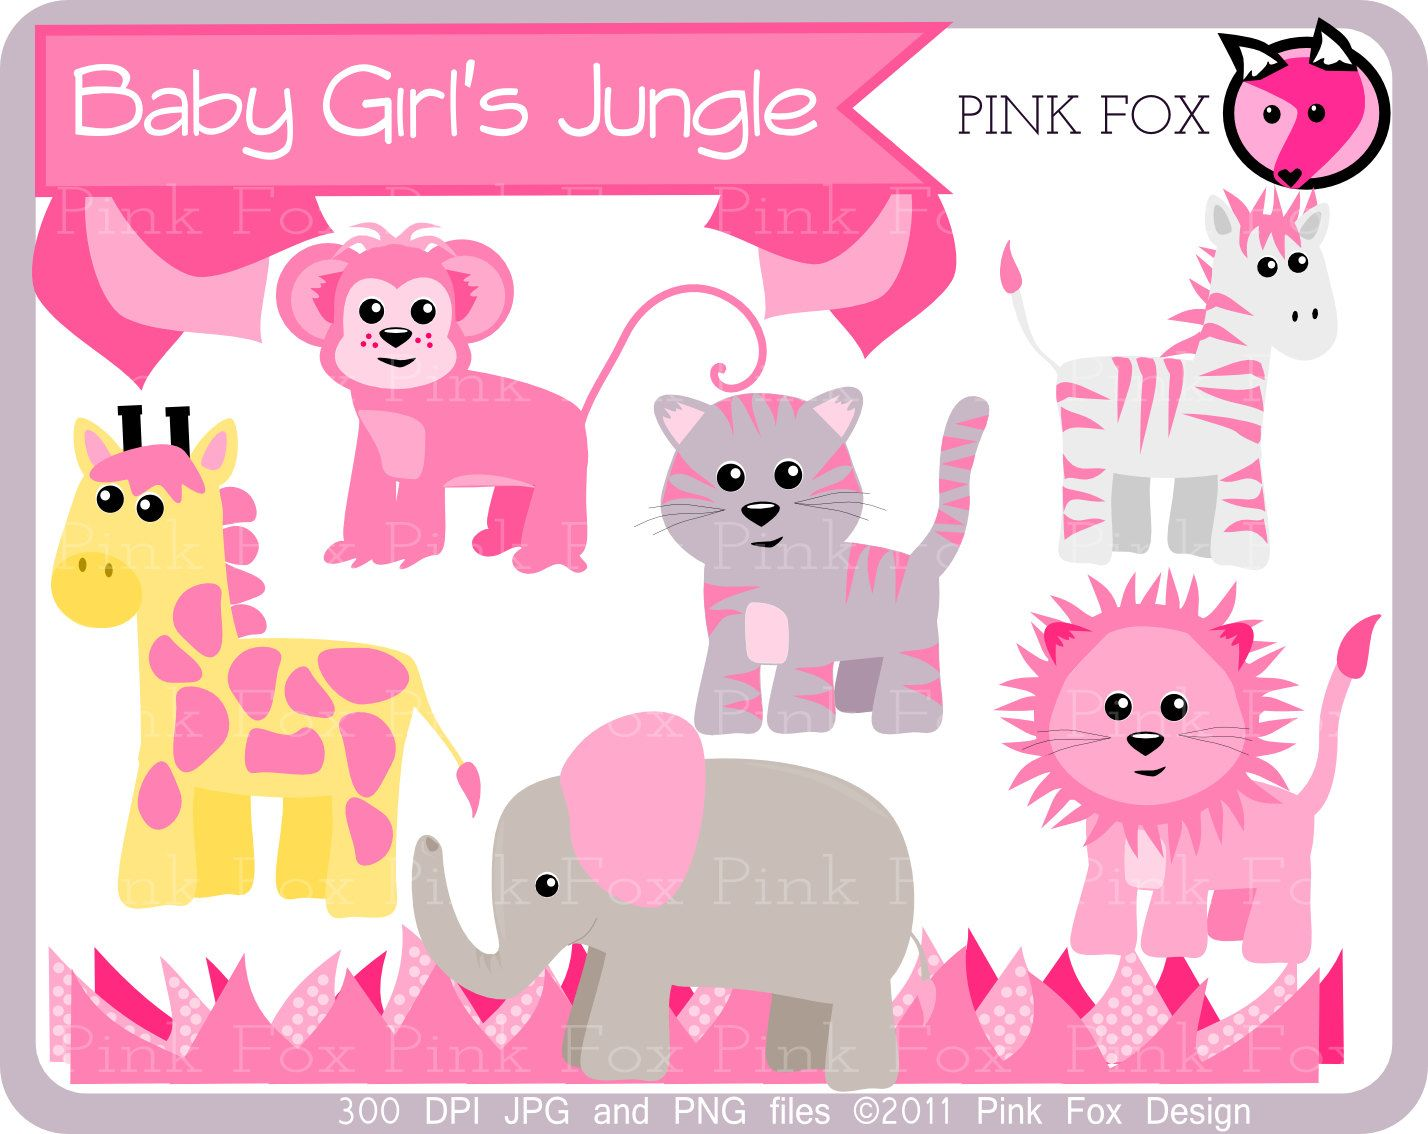 Baby girl jungle animals clipart picture transparent library clipart | Clip art | Clip art, Jungle animals, Animals picture transparent library